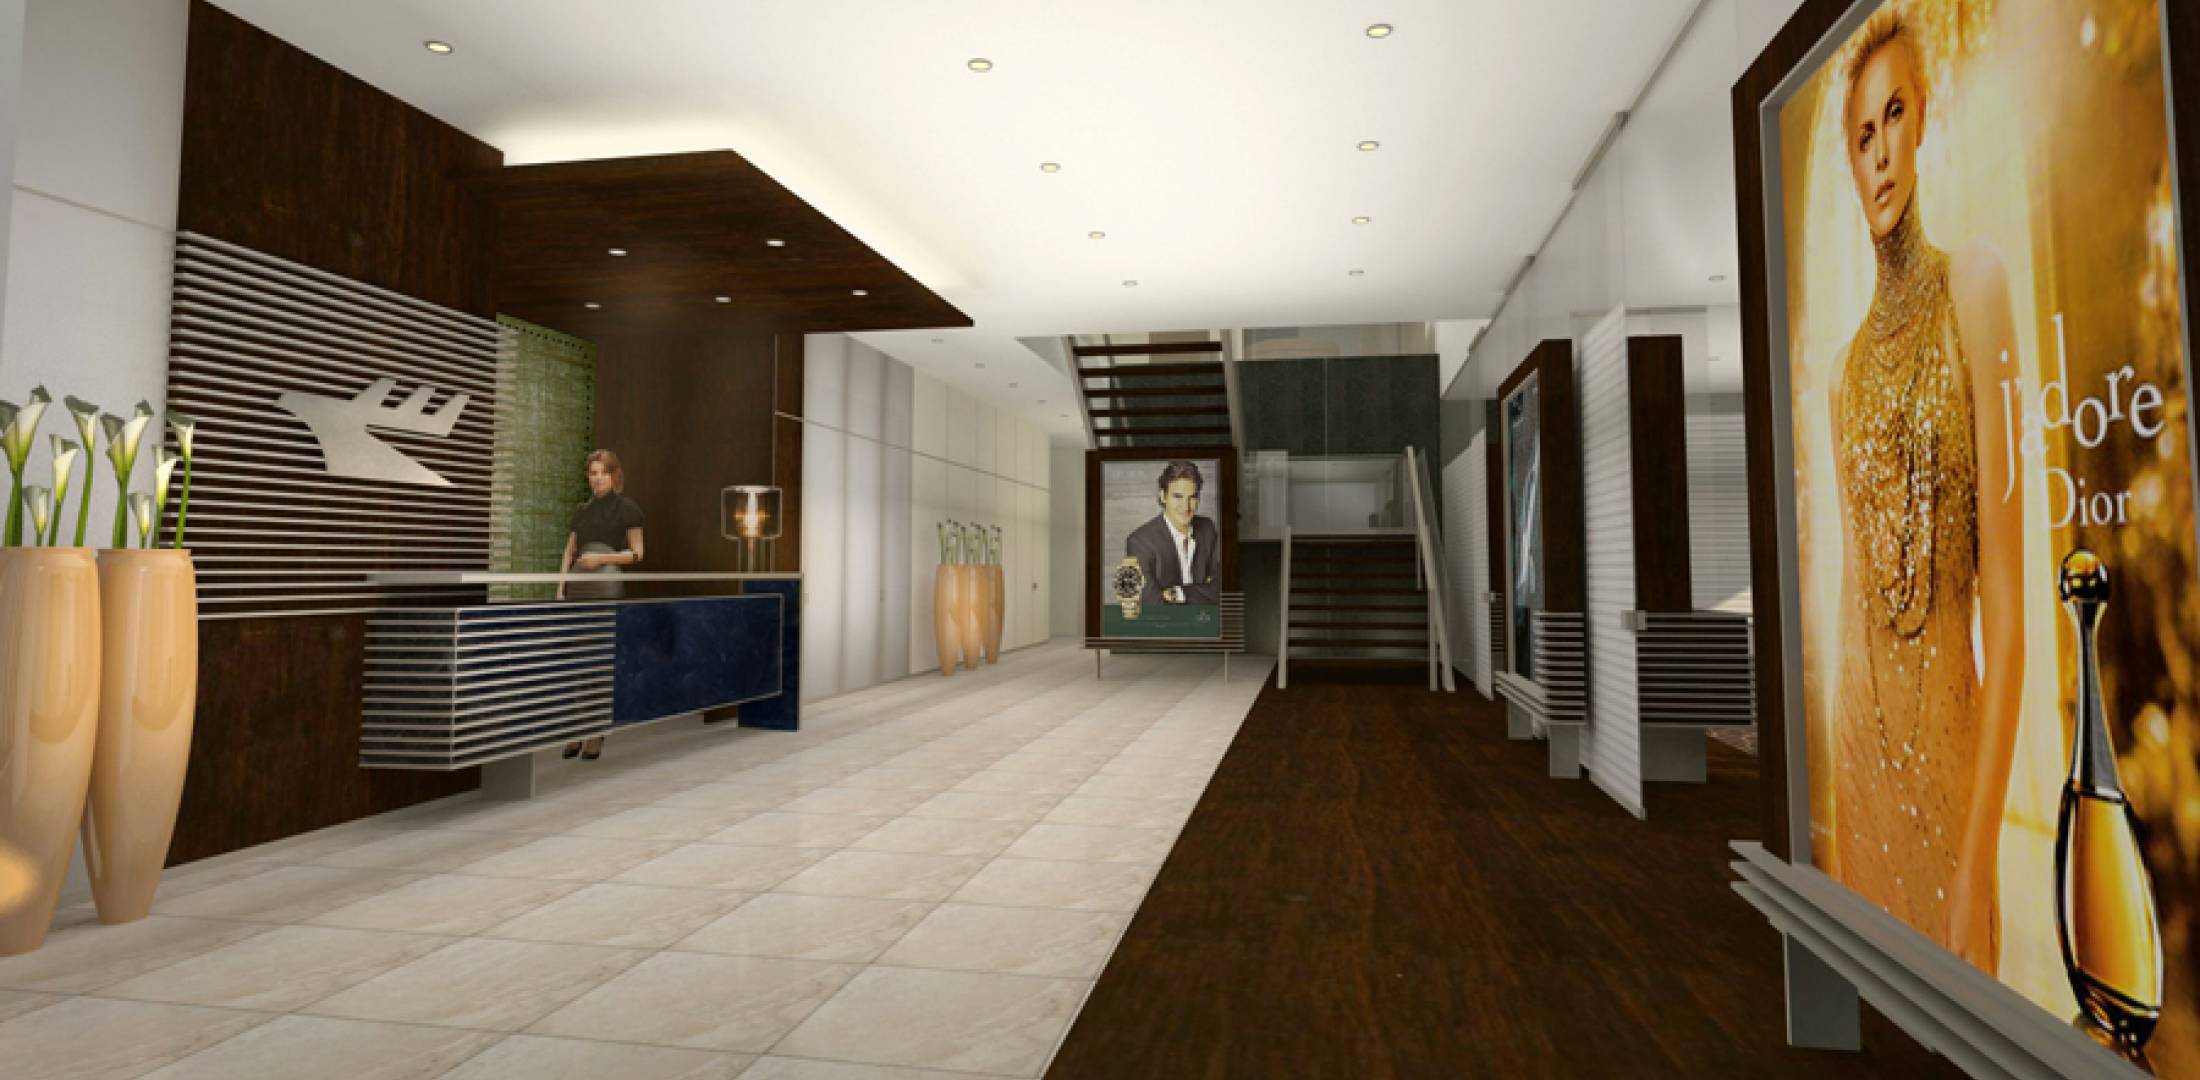 "Jet Aviation plans to ""harmonize"" the look and feel of its worldwide FBO and major MRO facilities by 2015. As part of this effort, the company will integrate the same style of reception desk, surface textures, colors and flooring in the lobby areas of all its FBOs."